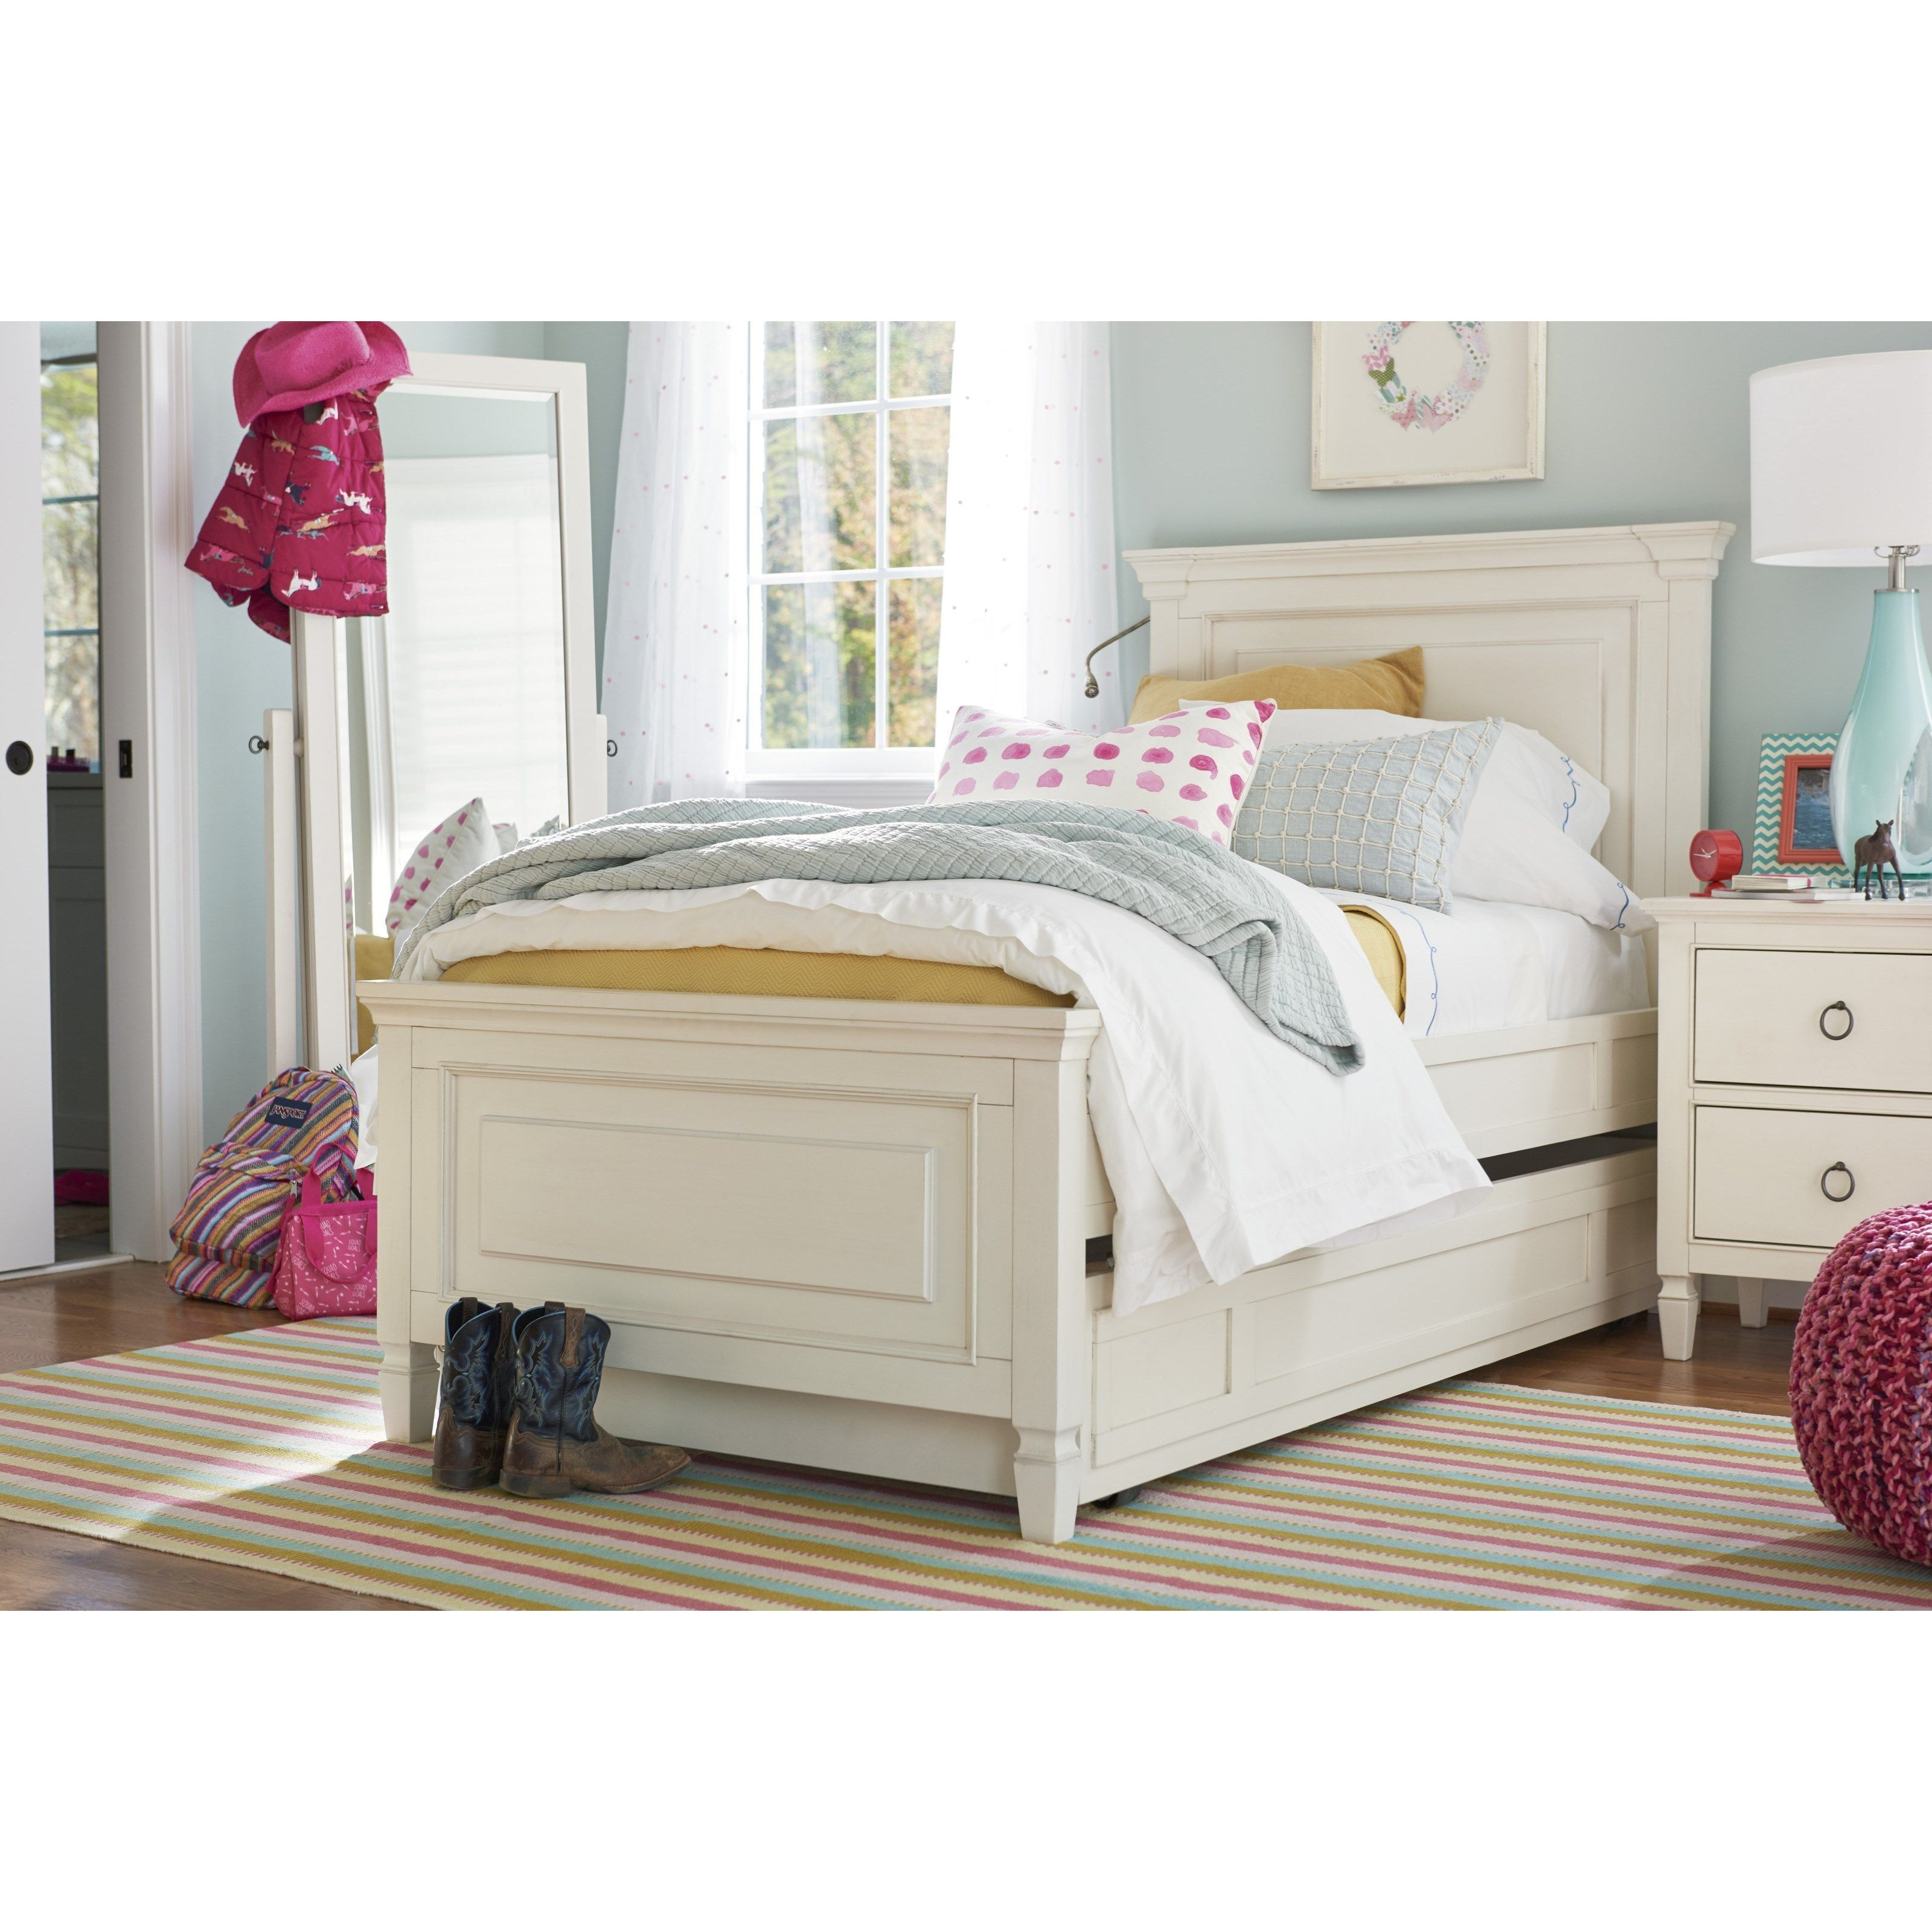 Summer Hill Twin Bedroom Group by Smartstuff Panel bed